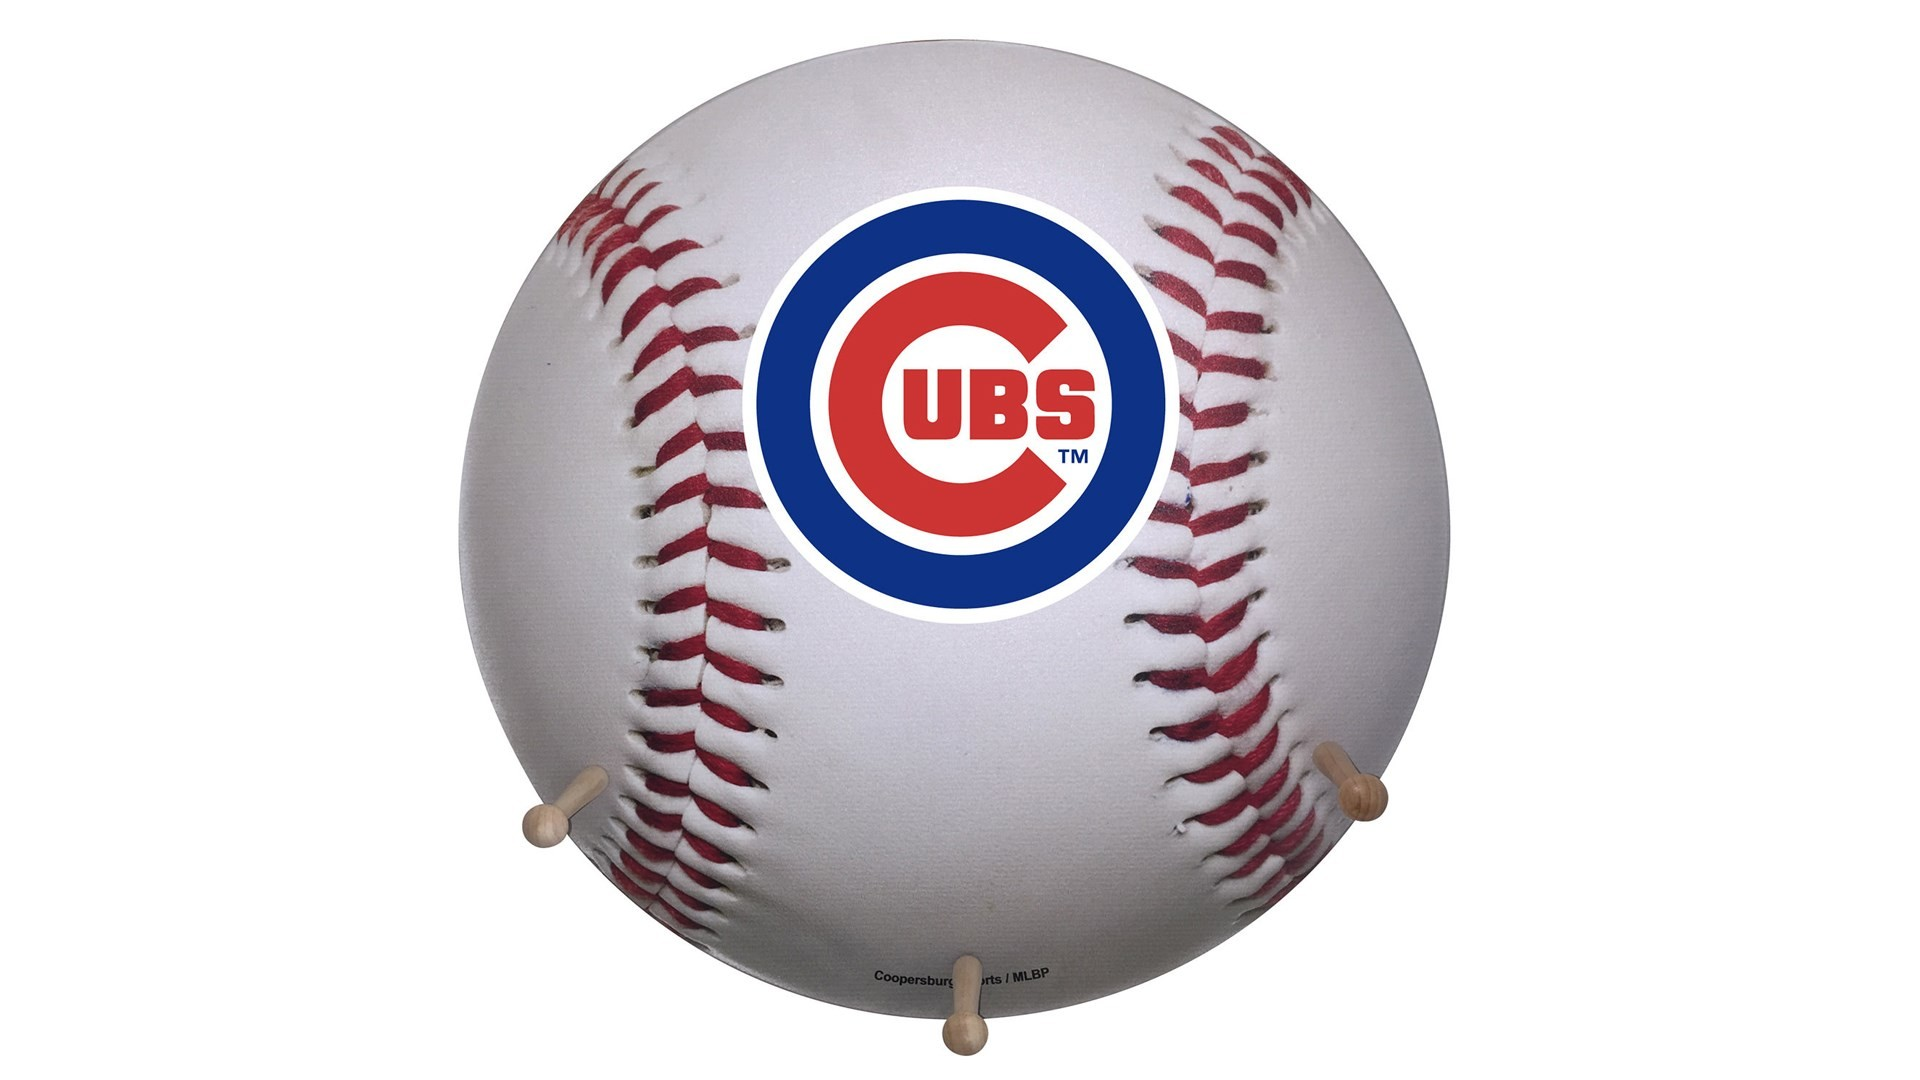 1920x1080 115241, widescreen wallpaper chicago cubs